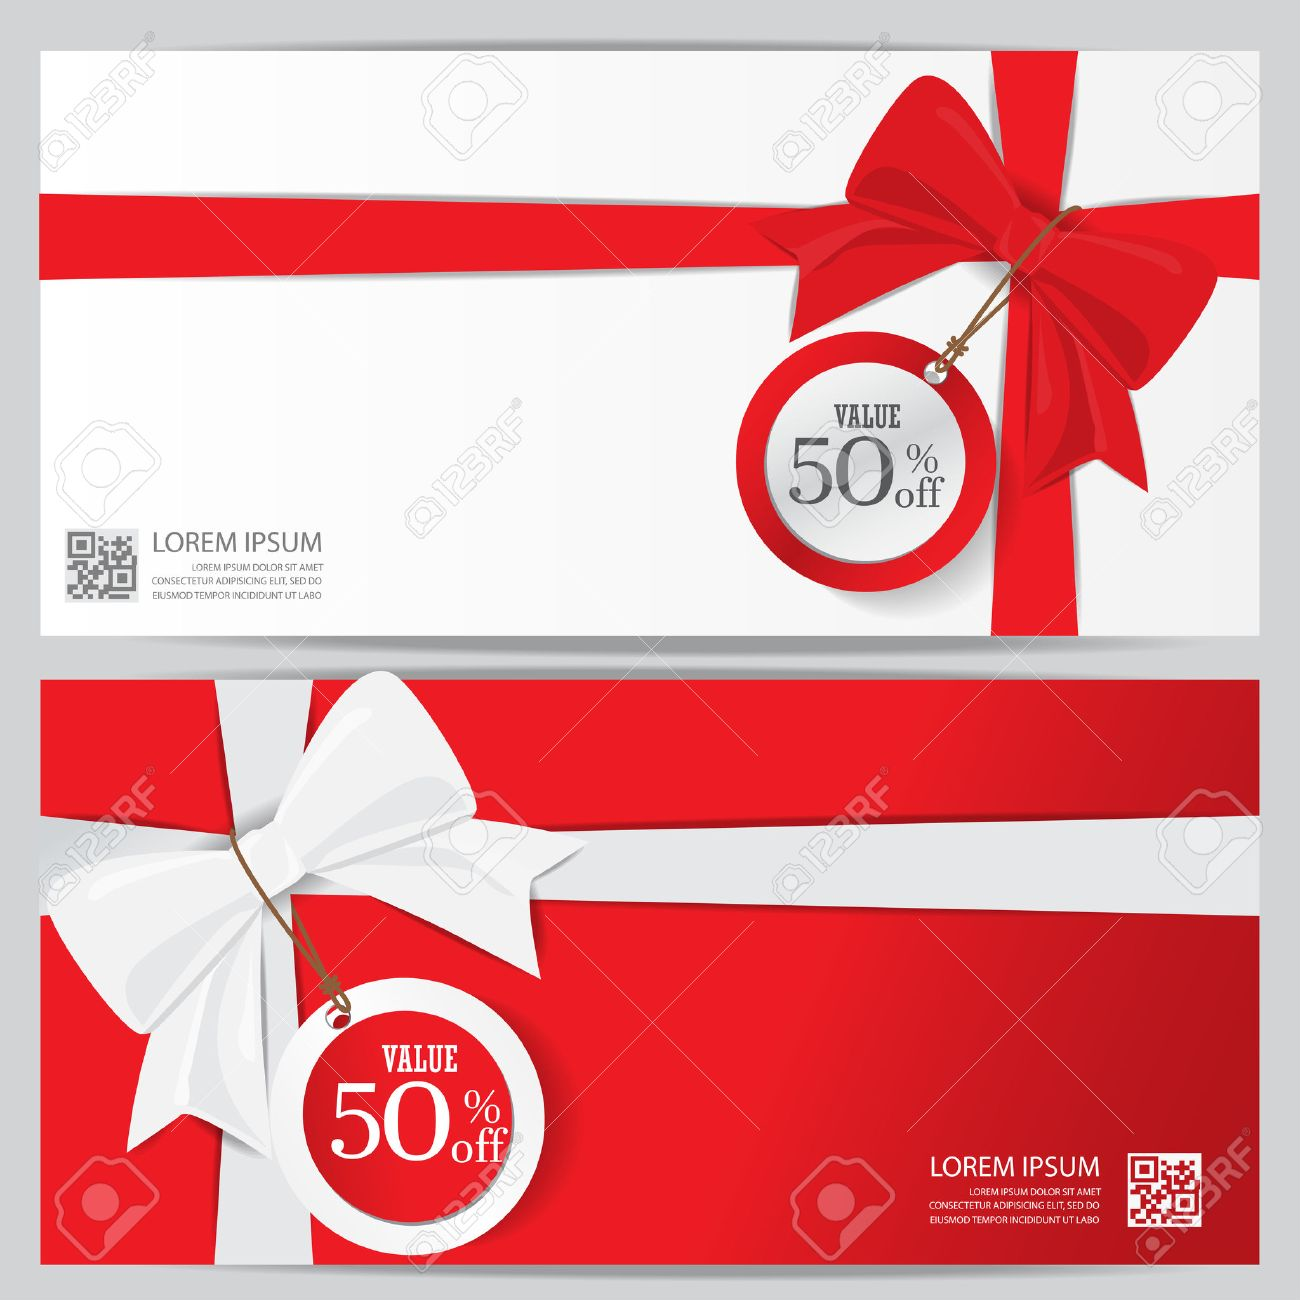 doc christmas voucher template homemade vouchers doc15781214 christmas voucher templates christmas gift christmas voucher template